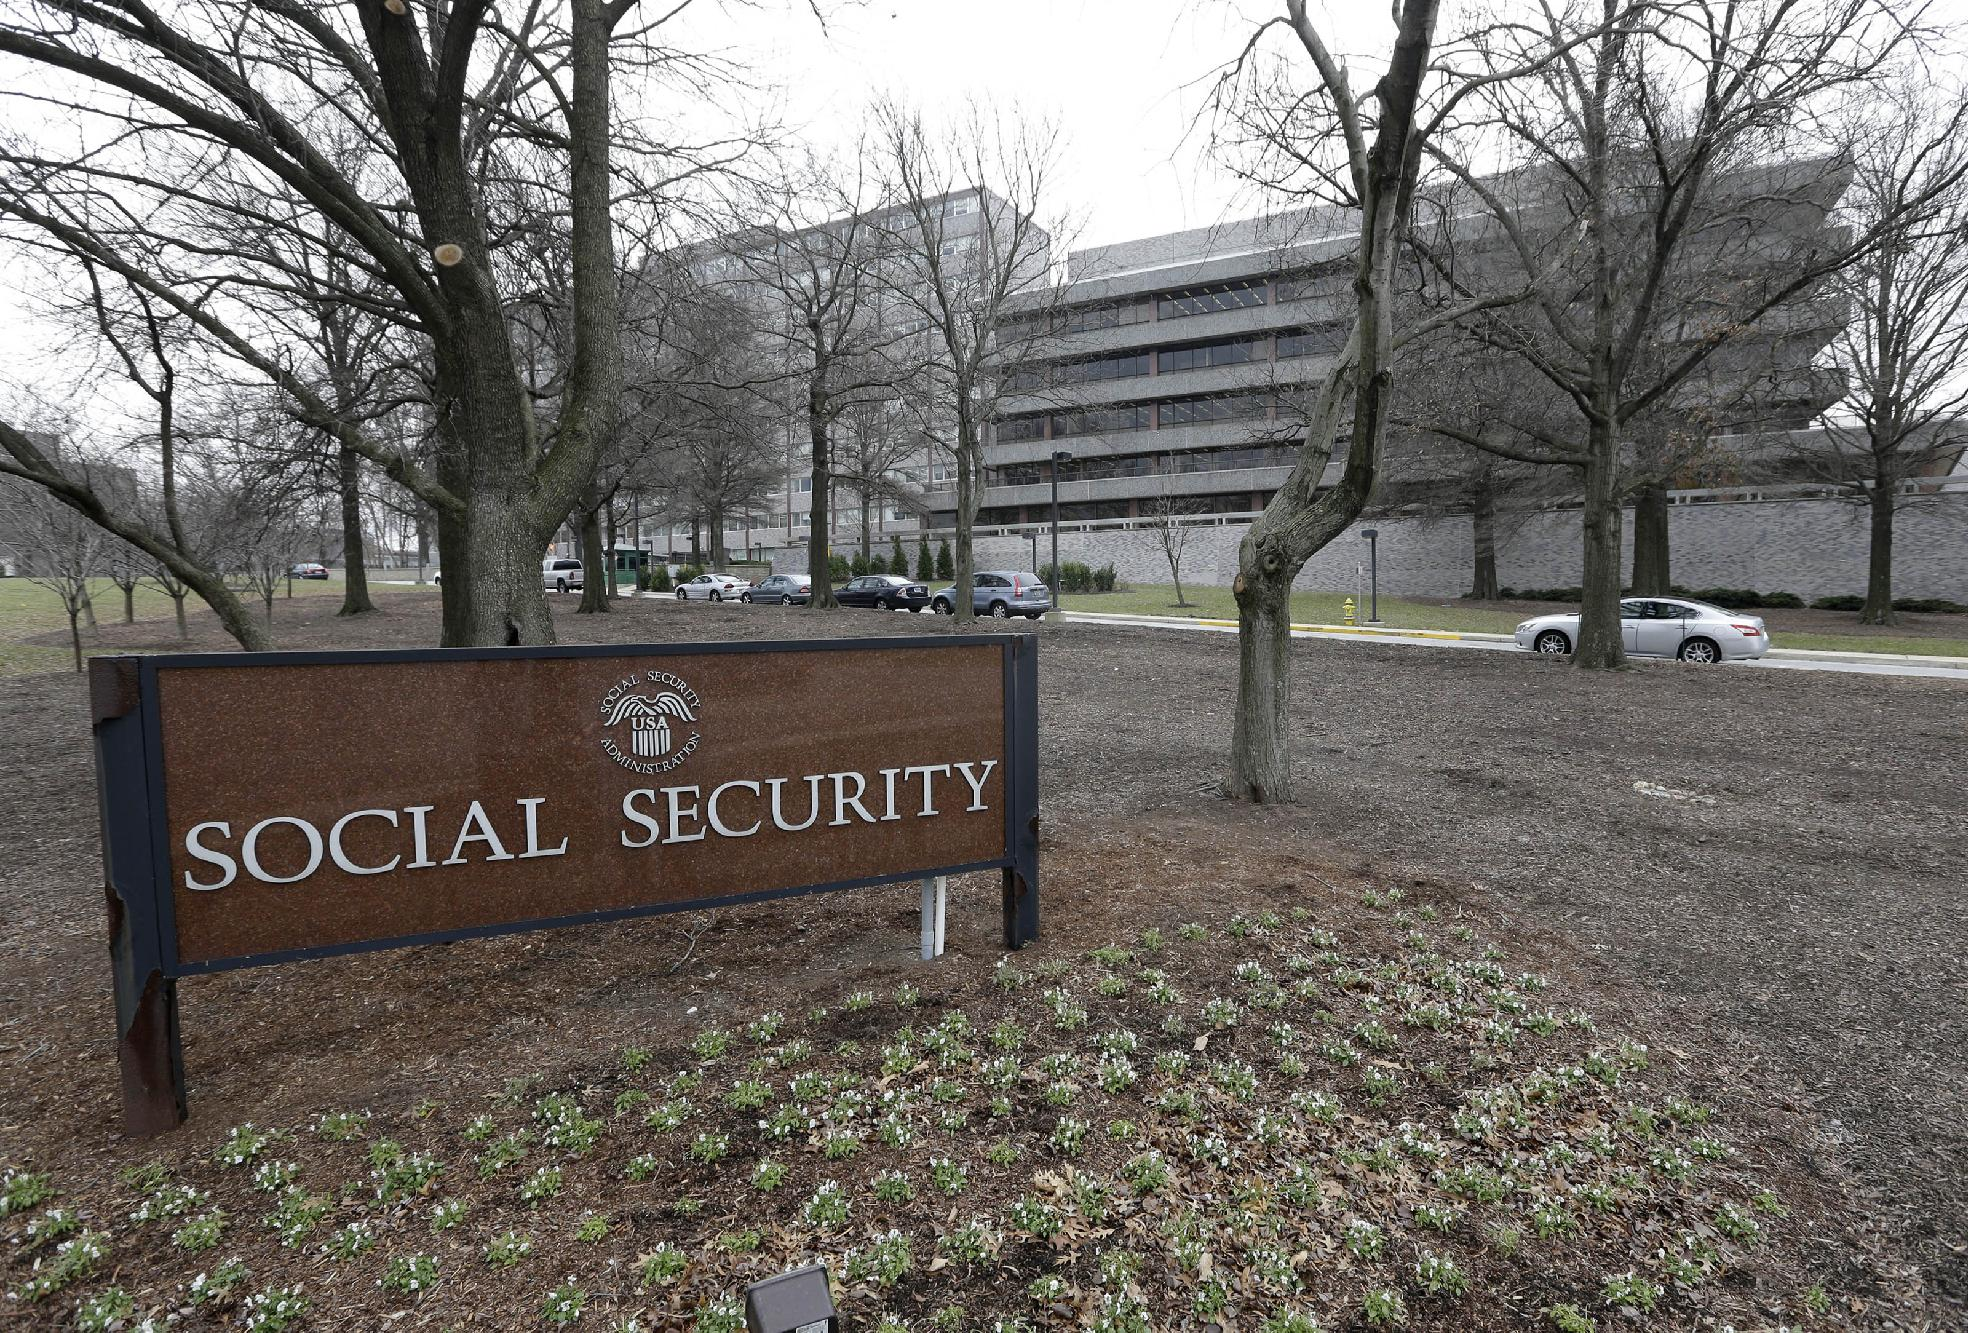 Social Security's $300M IT project doesn't work